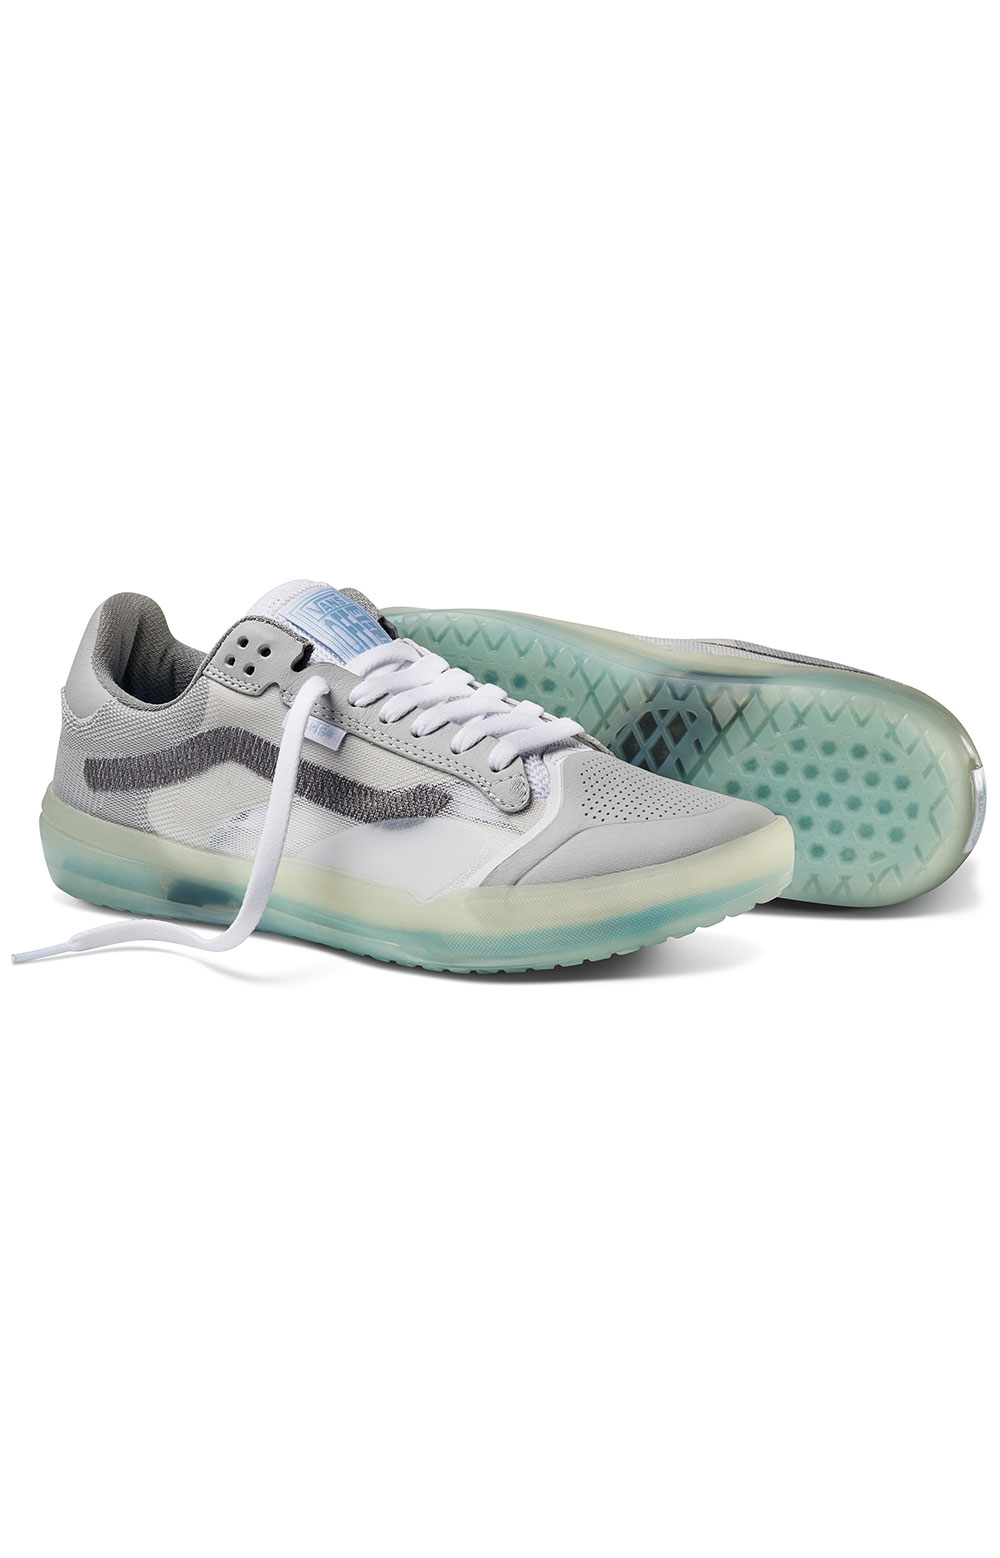 (DY76KL) Evdnt Ultimate Waffle Shoes - Grey/Multi 2